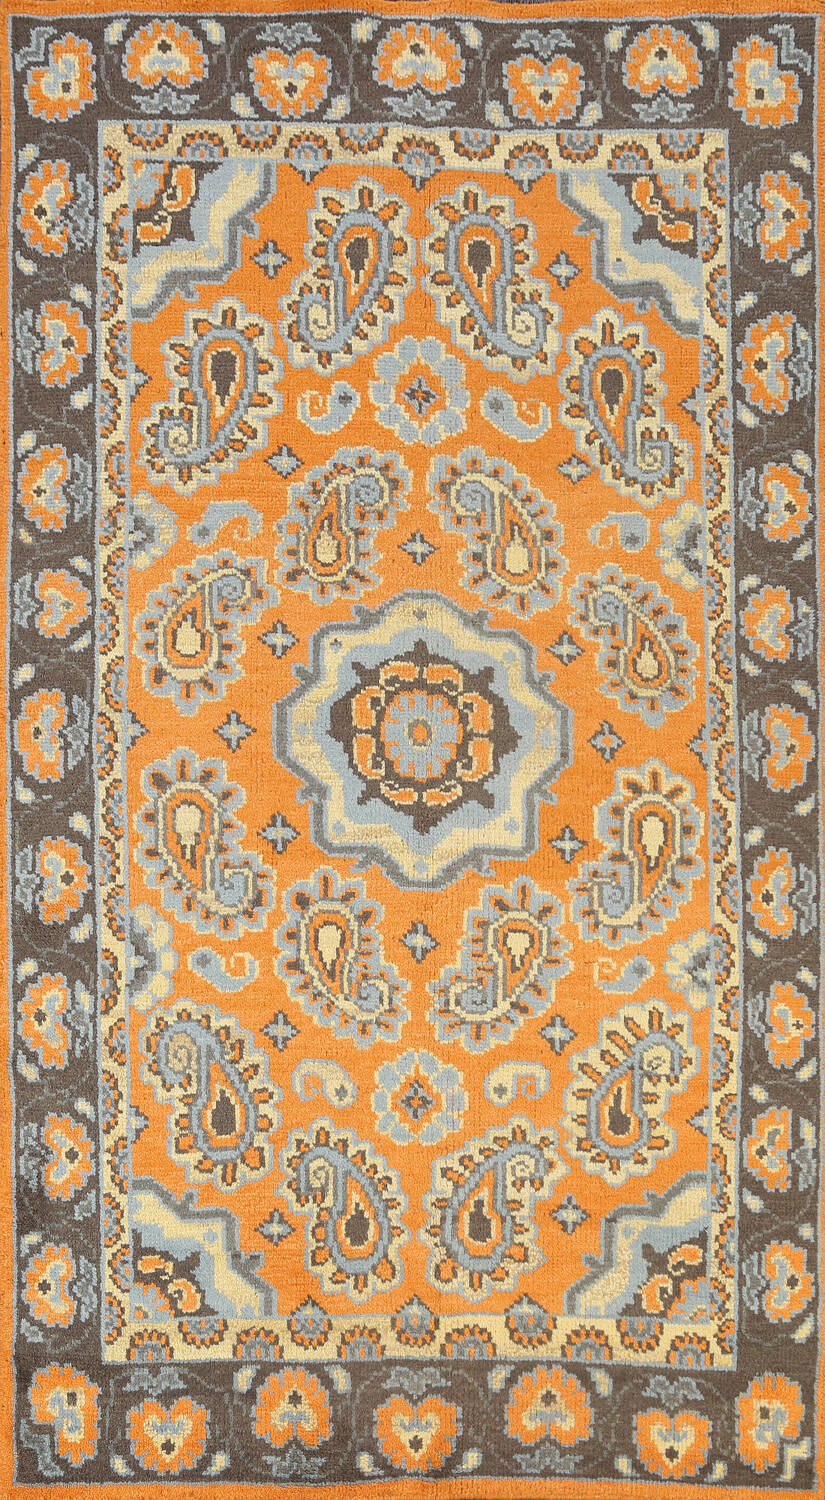 Paisley Abstract Oriental Area Rug 5x8 image 1